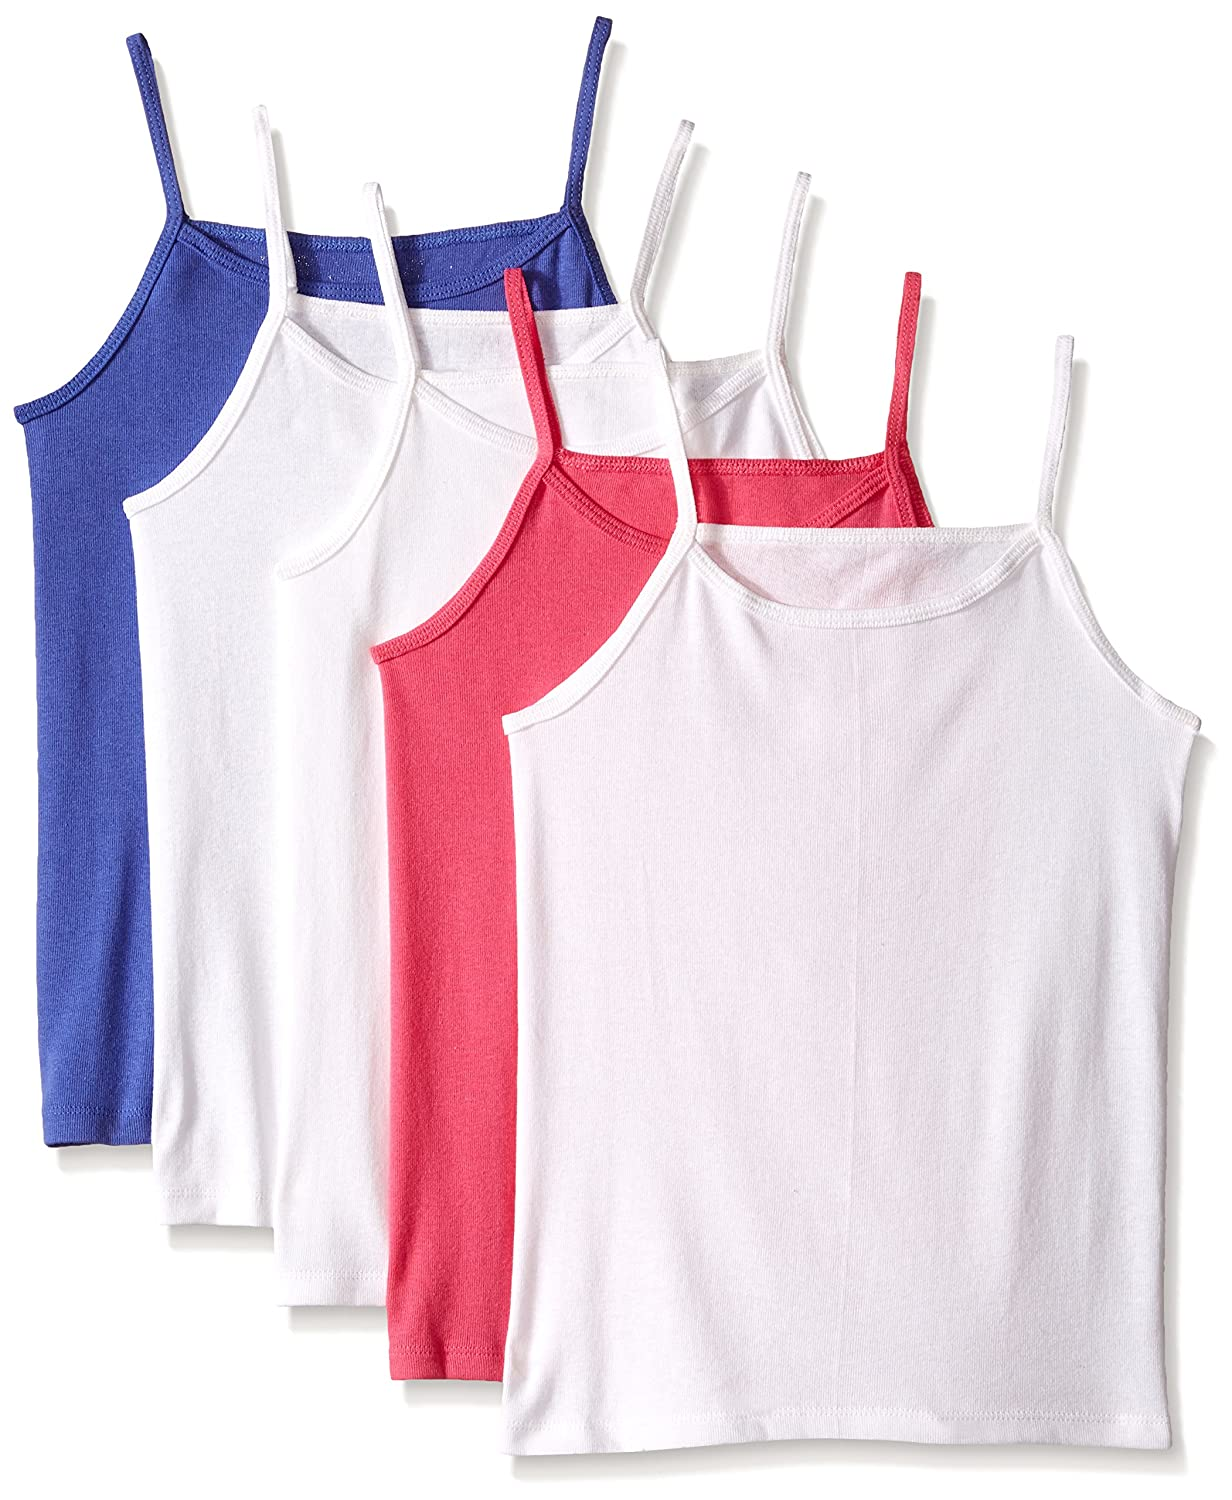 Fruit of the Loom girls Big Girls 5pk Assorted Cami 5GCAMIA